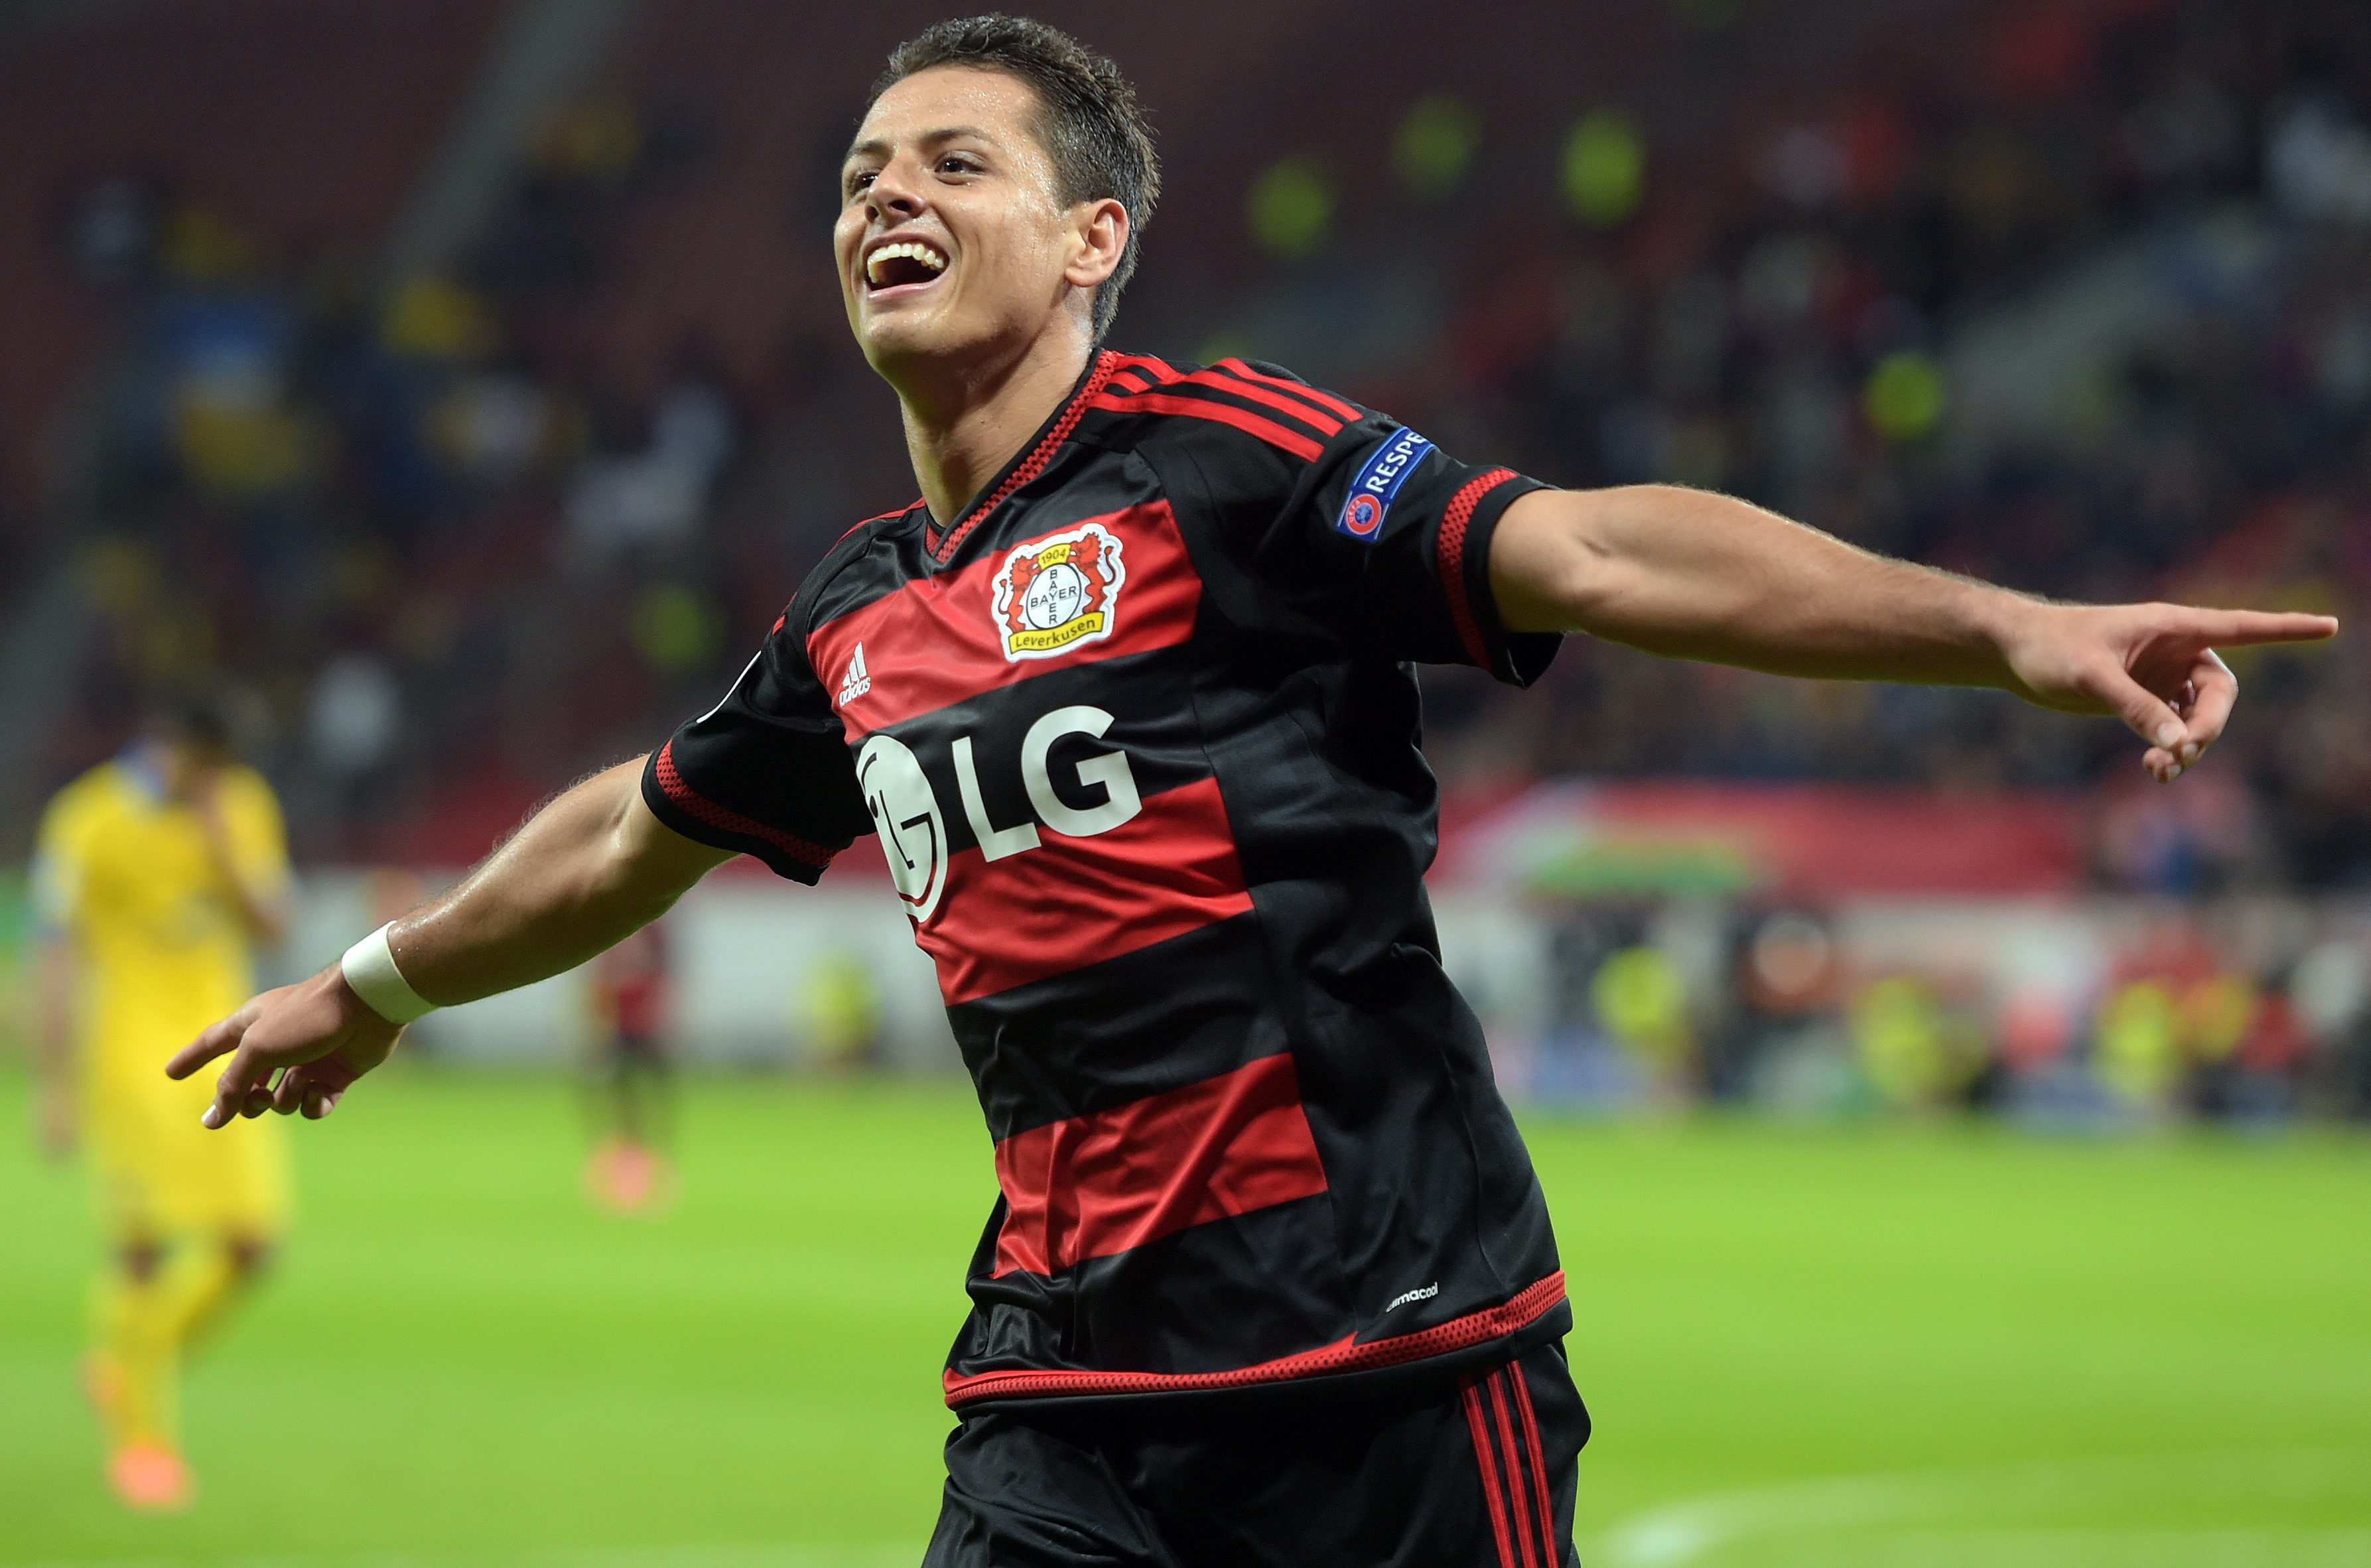 Our Boy Is Back Chicharito Just Scored His 100th Club Goal